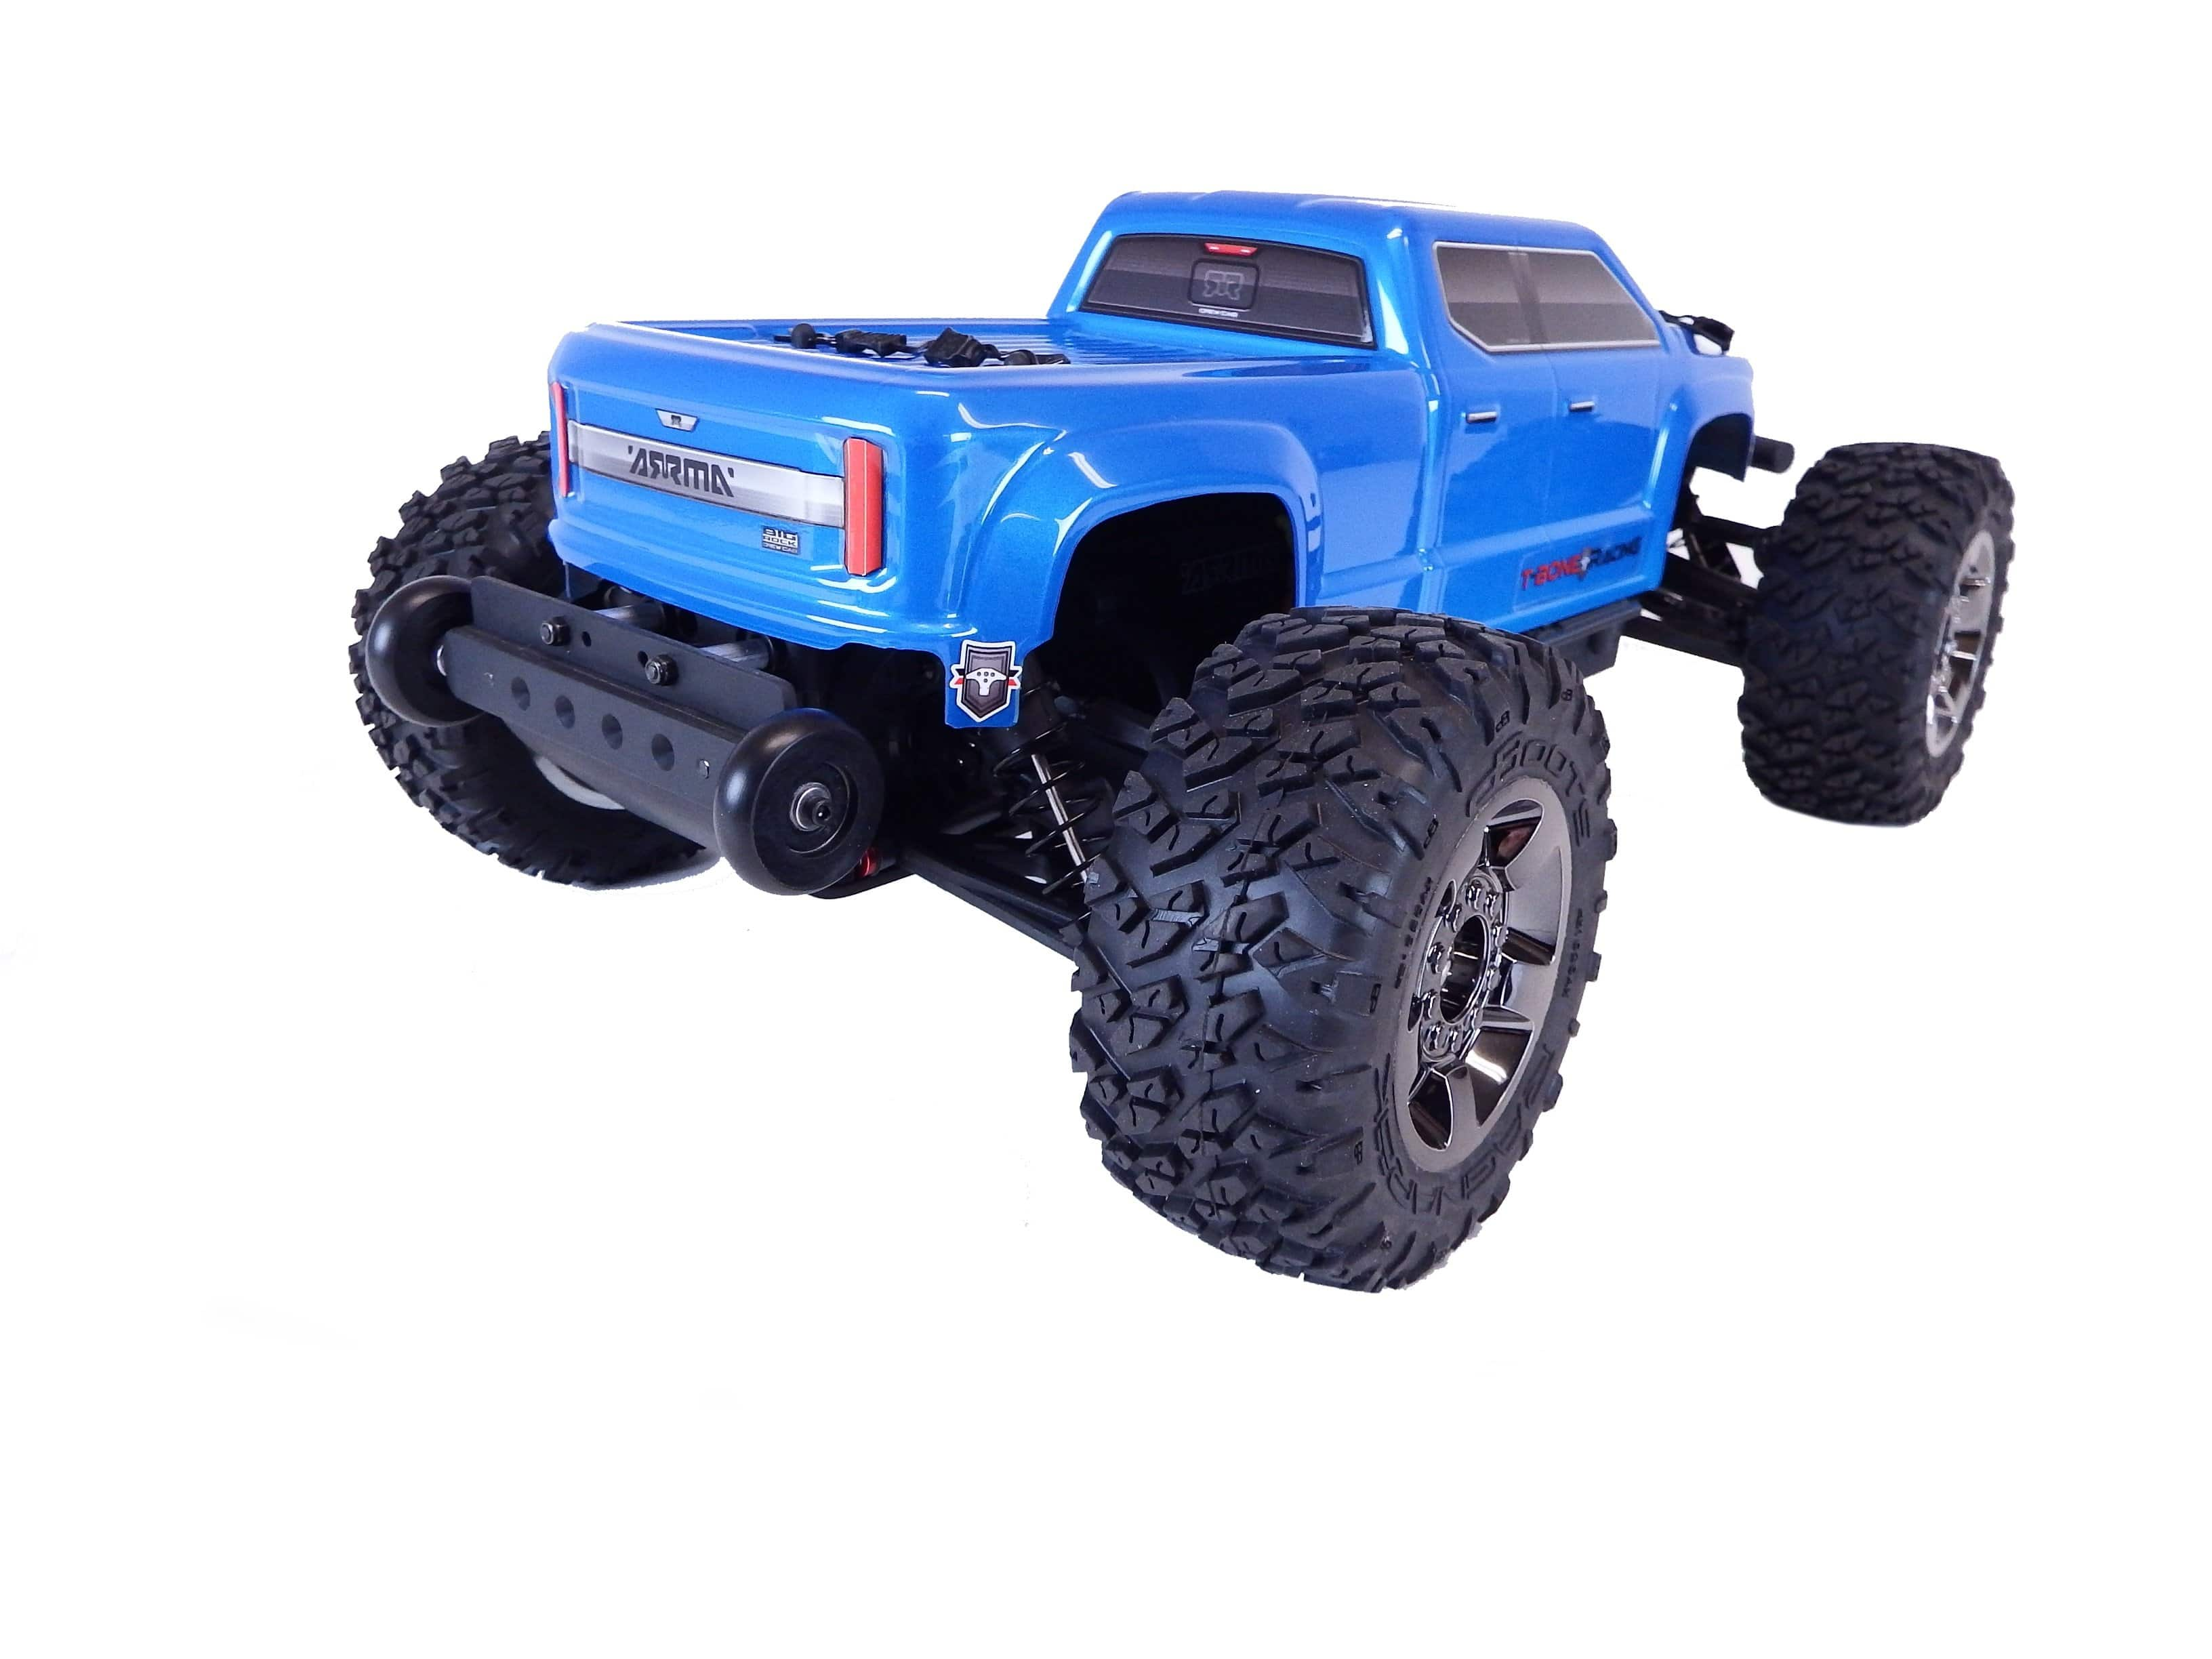 TBR Wheelie Bar - Arrma Big Rock 4x4  3S - 10096